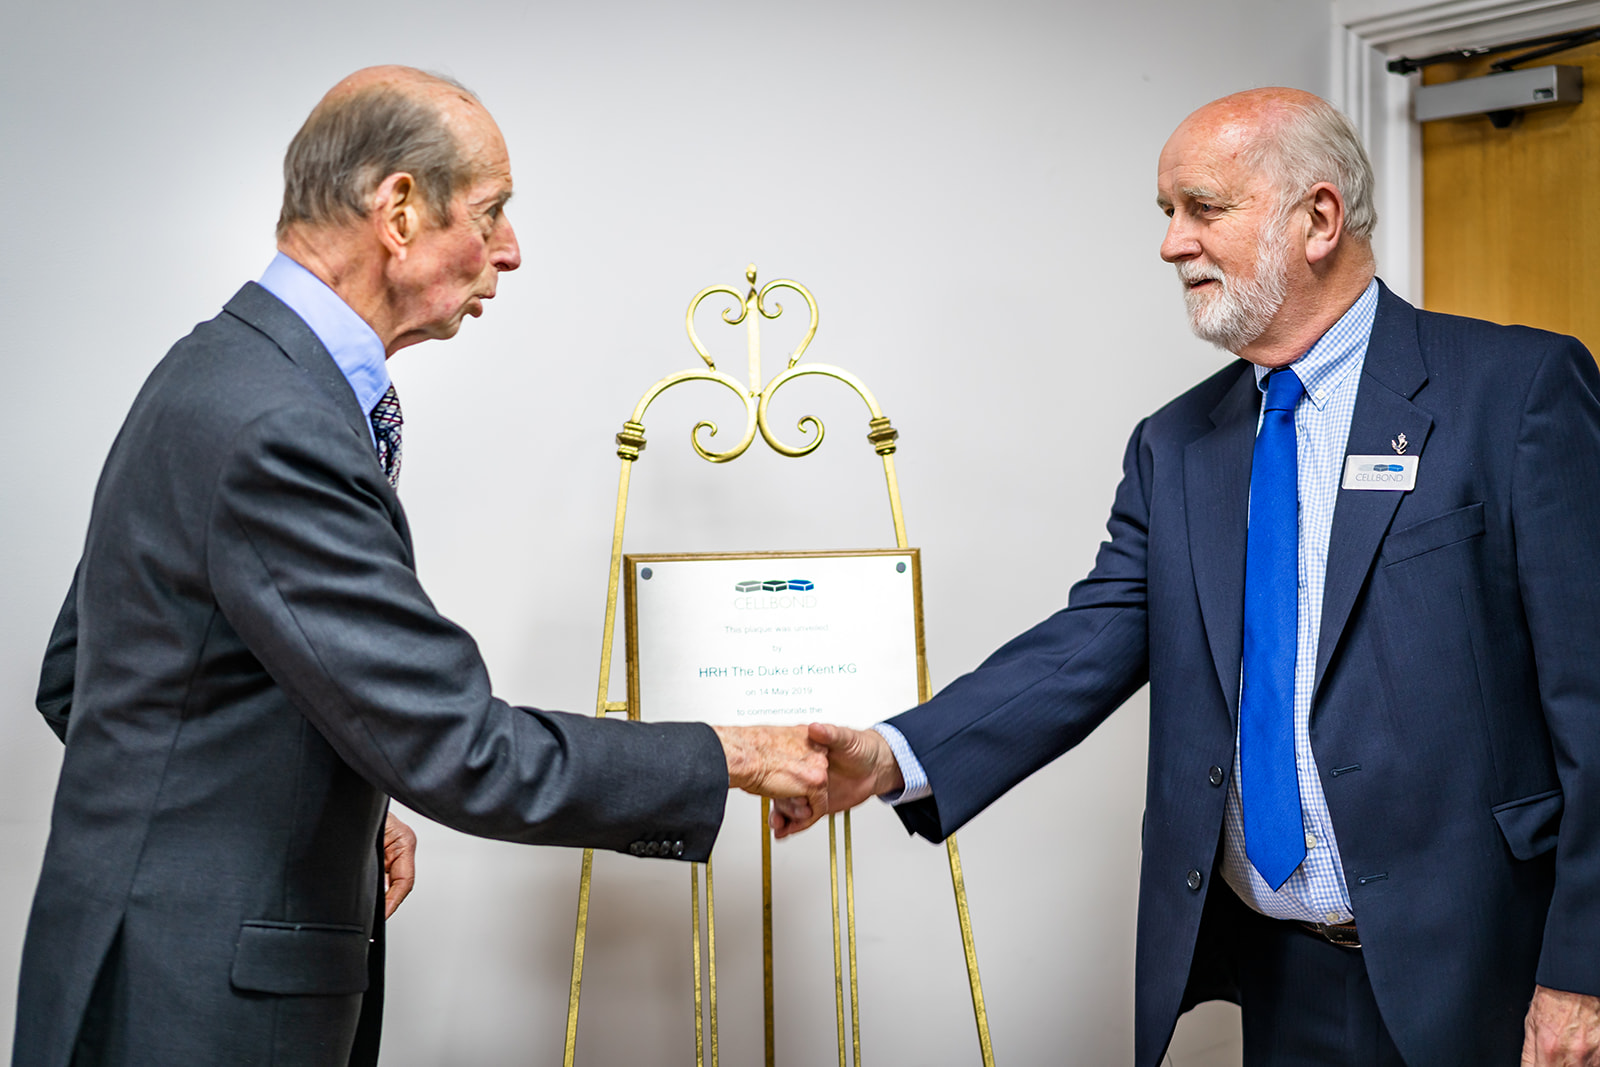 Cellbond Paul Cope with HRH The Duke of kent - plaque unveiling